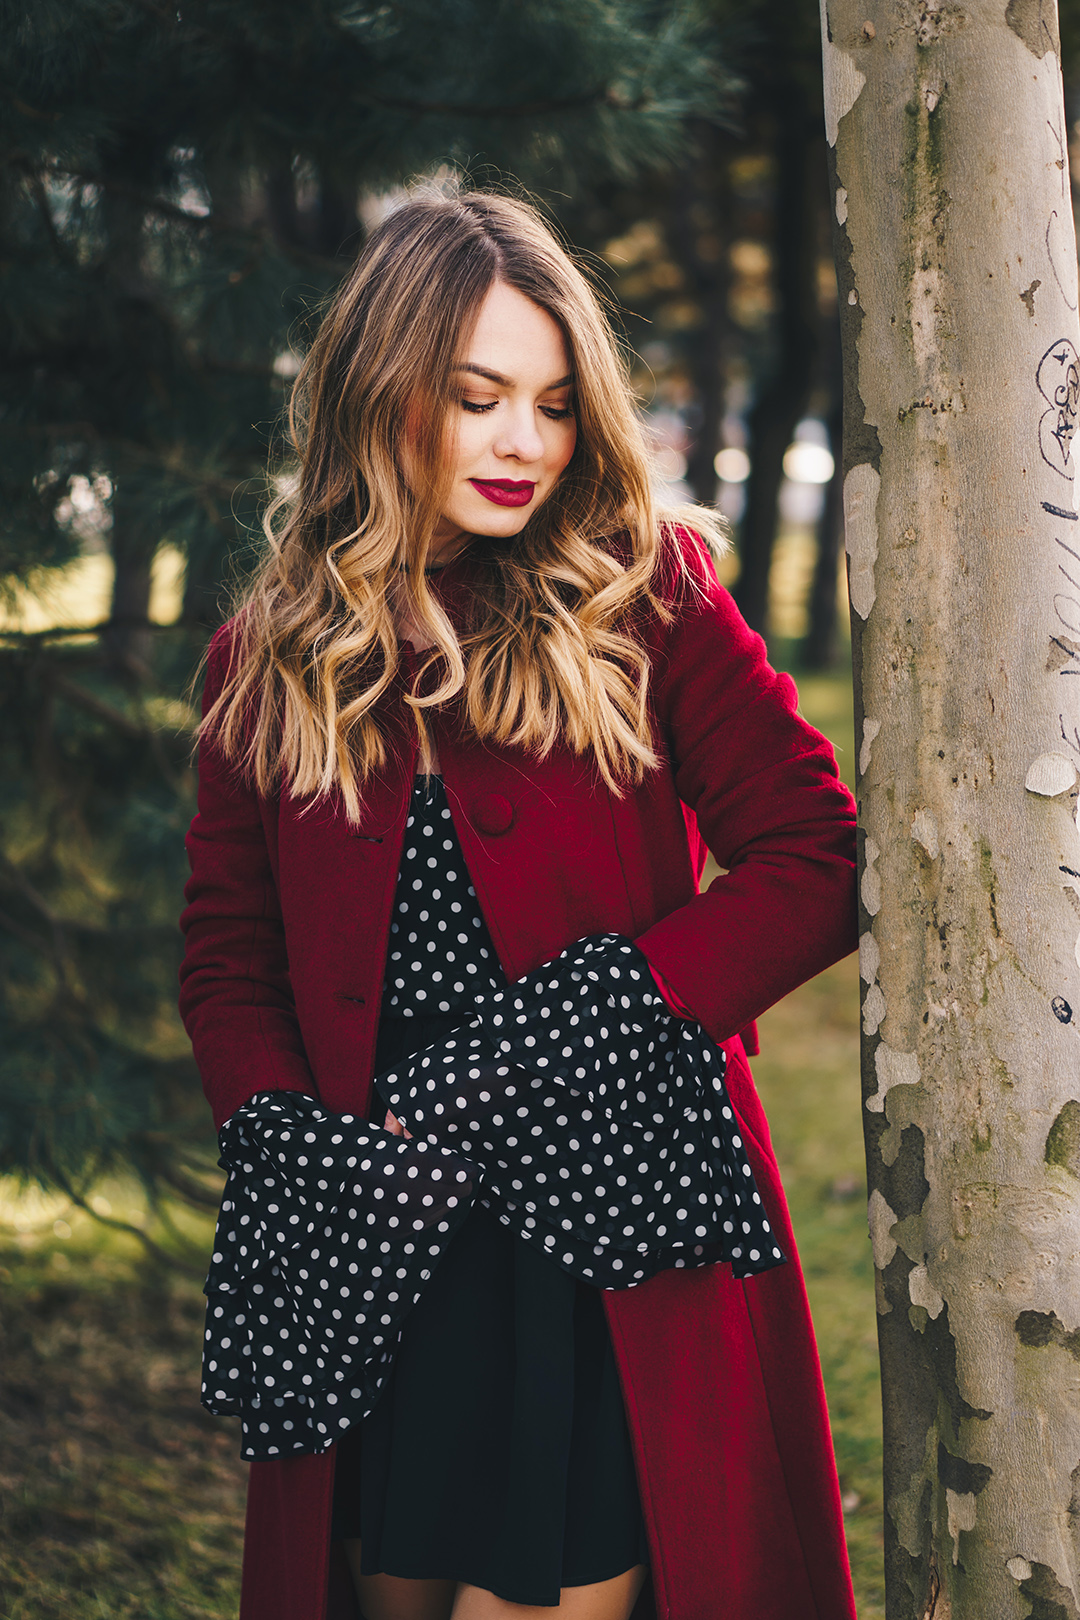 red-wool-coat-polka-dots-bell-sleeves-blouse-winter-outfit-1